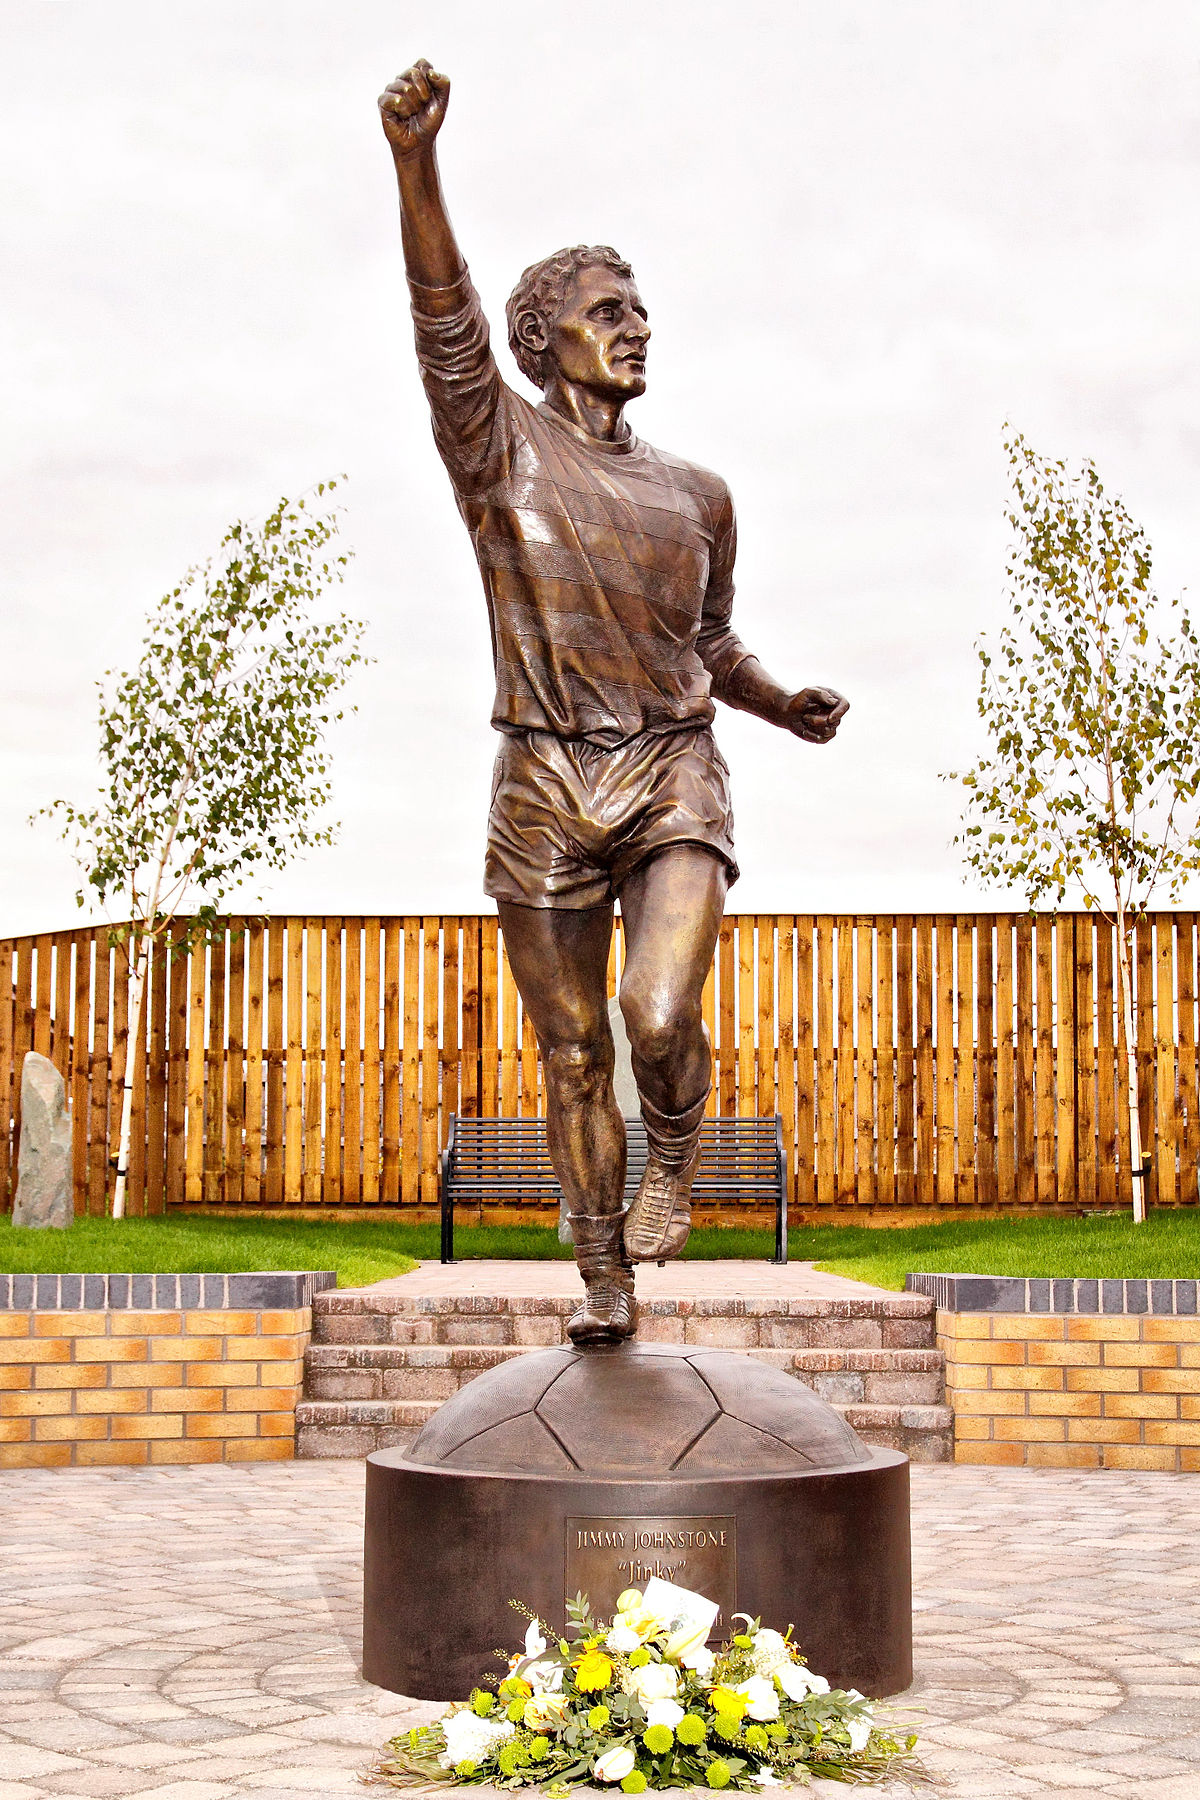 Jimmy Johnstone Lord of the Wing